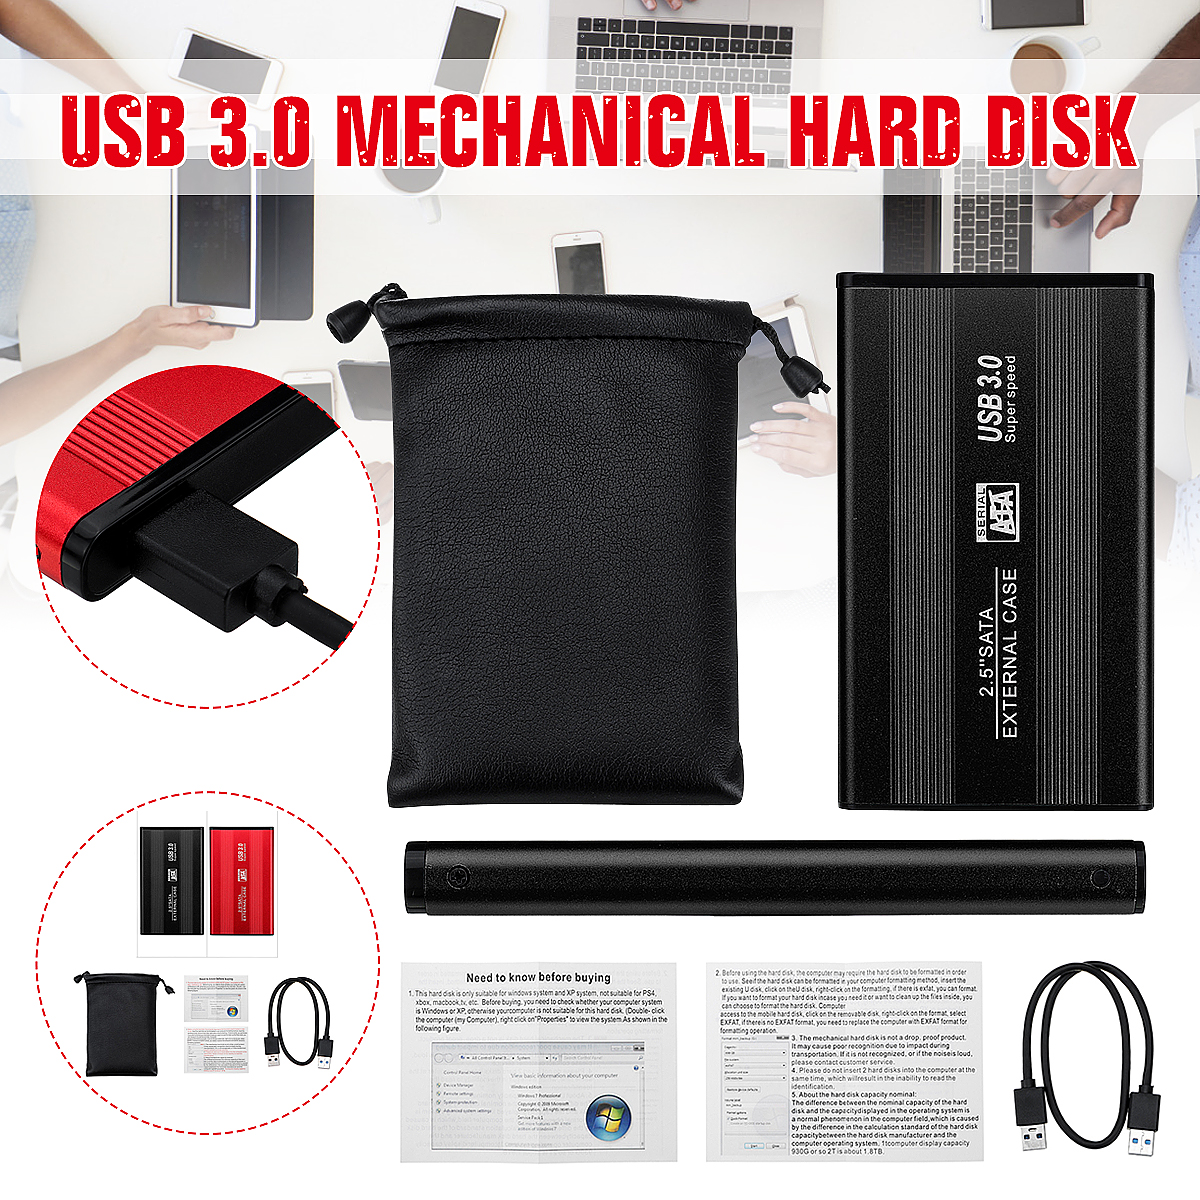 Computer Neutral Hard Disk Black Upgrade 1T USB 3.0 Interface Efficient Support HDD/SSD Portable Hard Disk With USB Cable